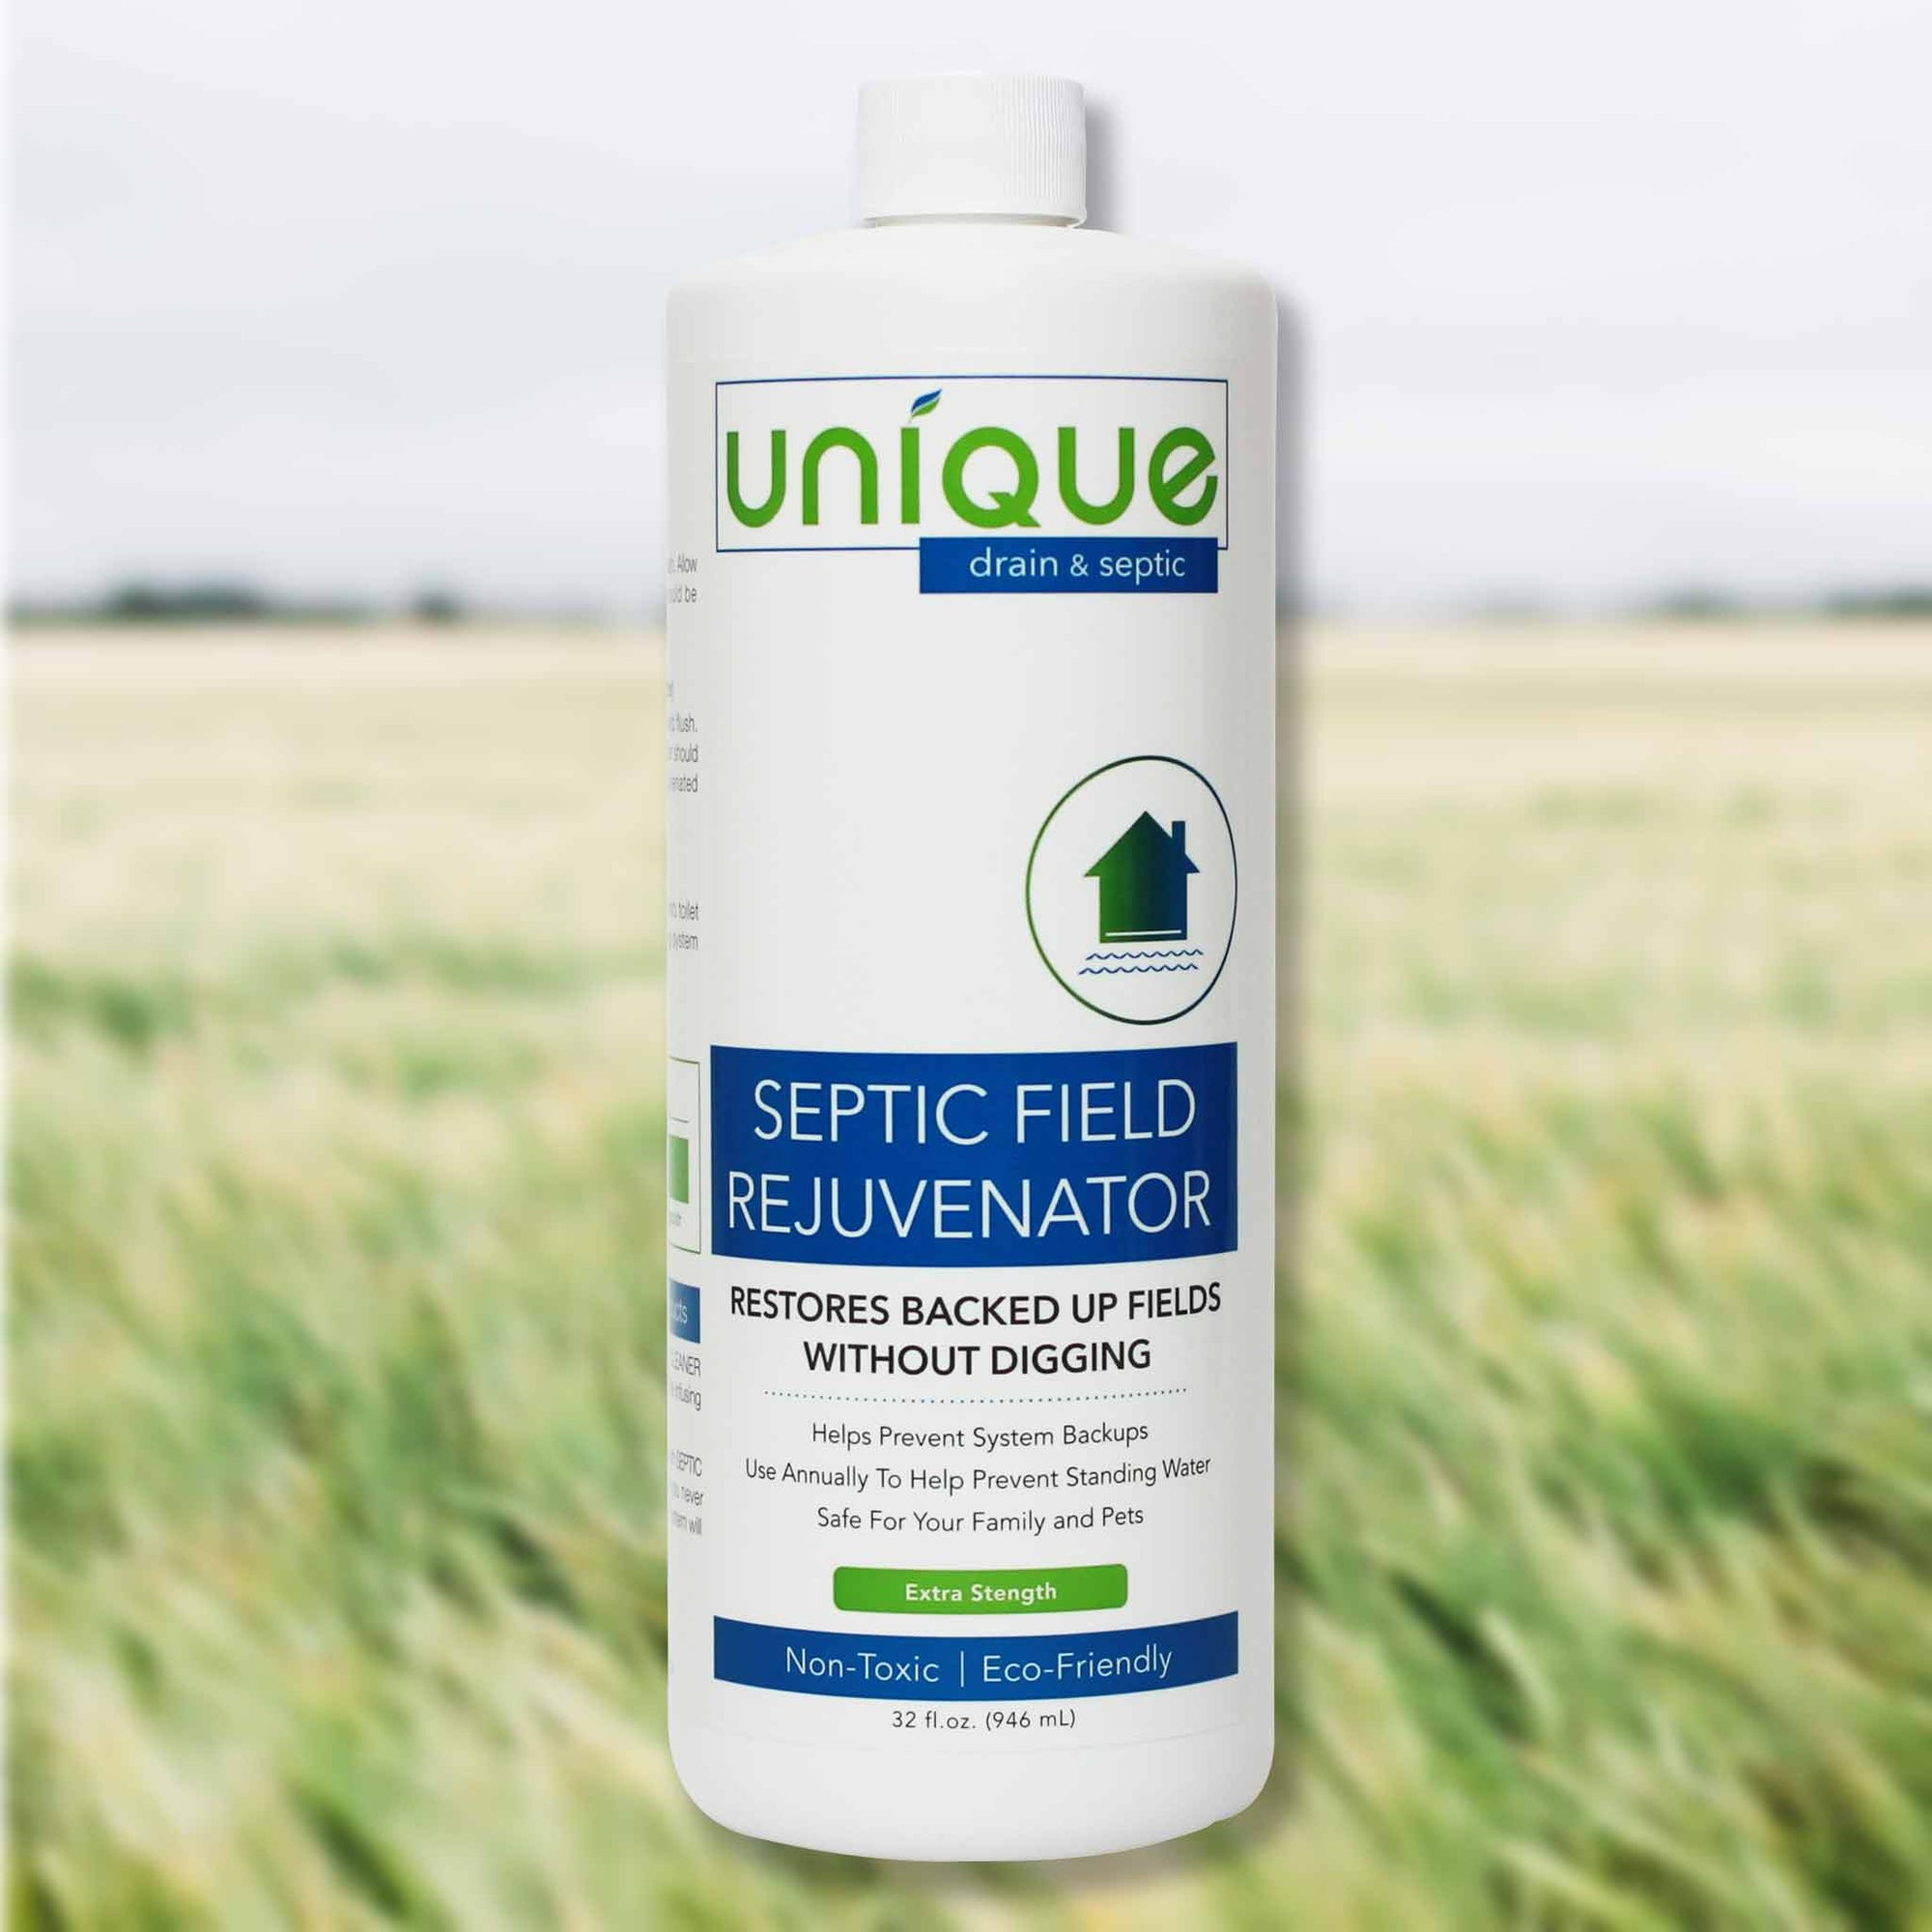 Unique Septic Field Rejuvenator is a powerful blend of bacteria that works to restore septic systems. Customers have save thousands by avoiding costly septic maintenance. Unique Drain + Septic